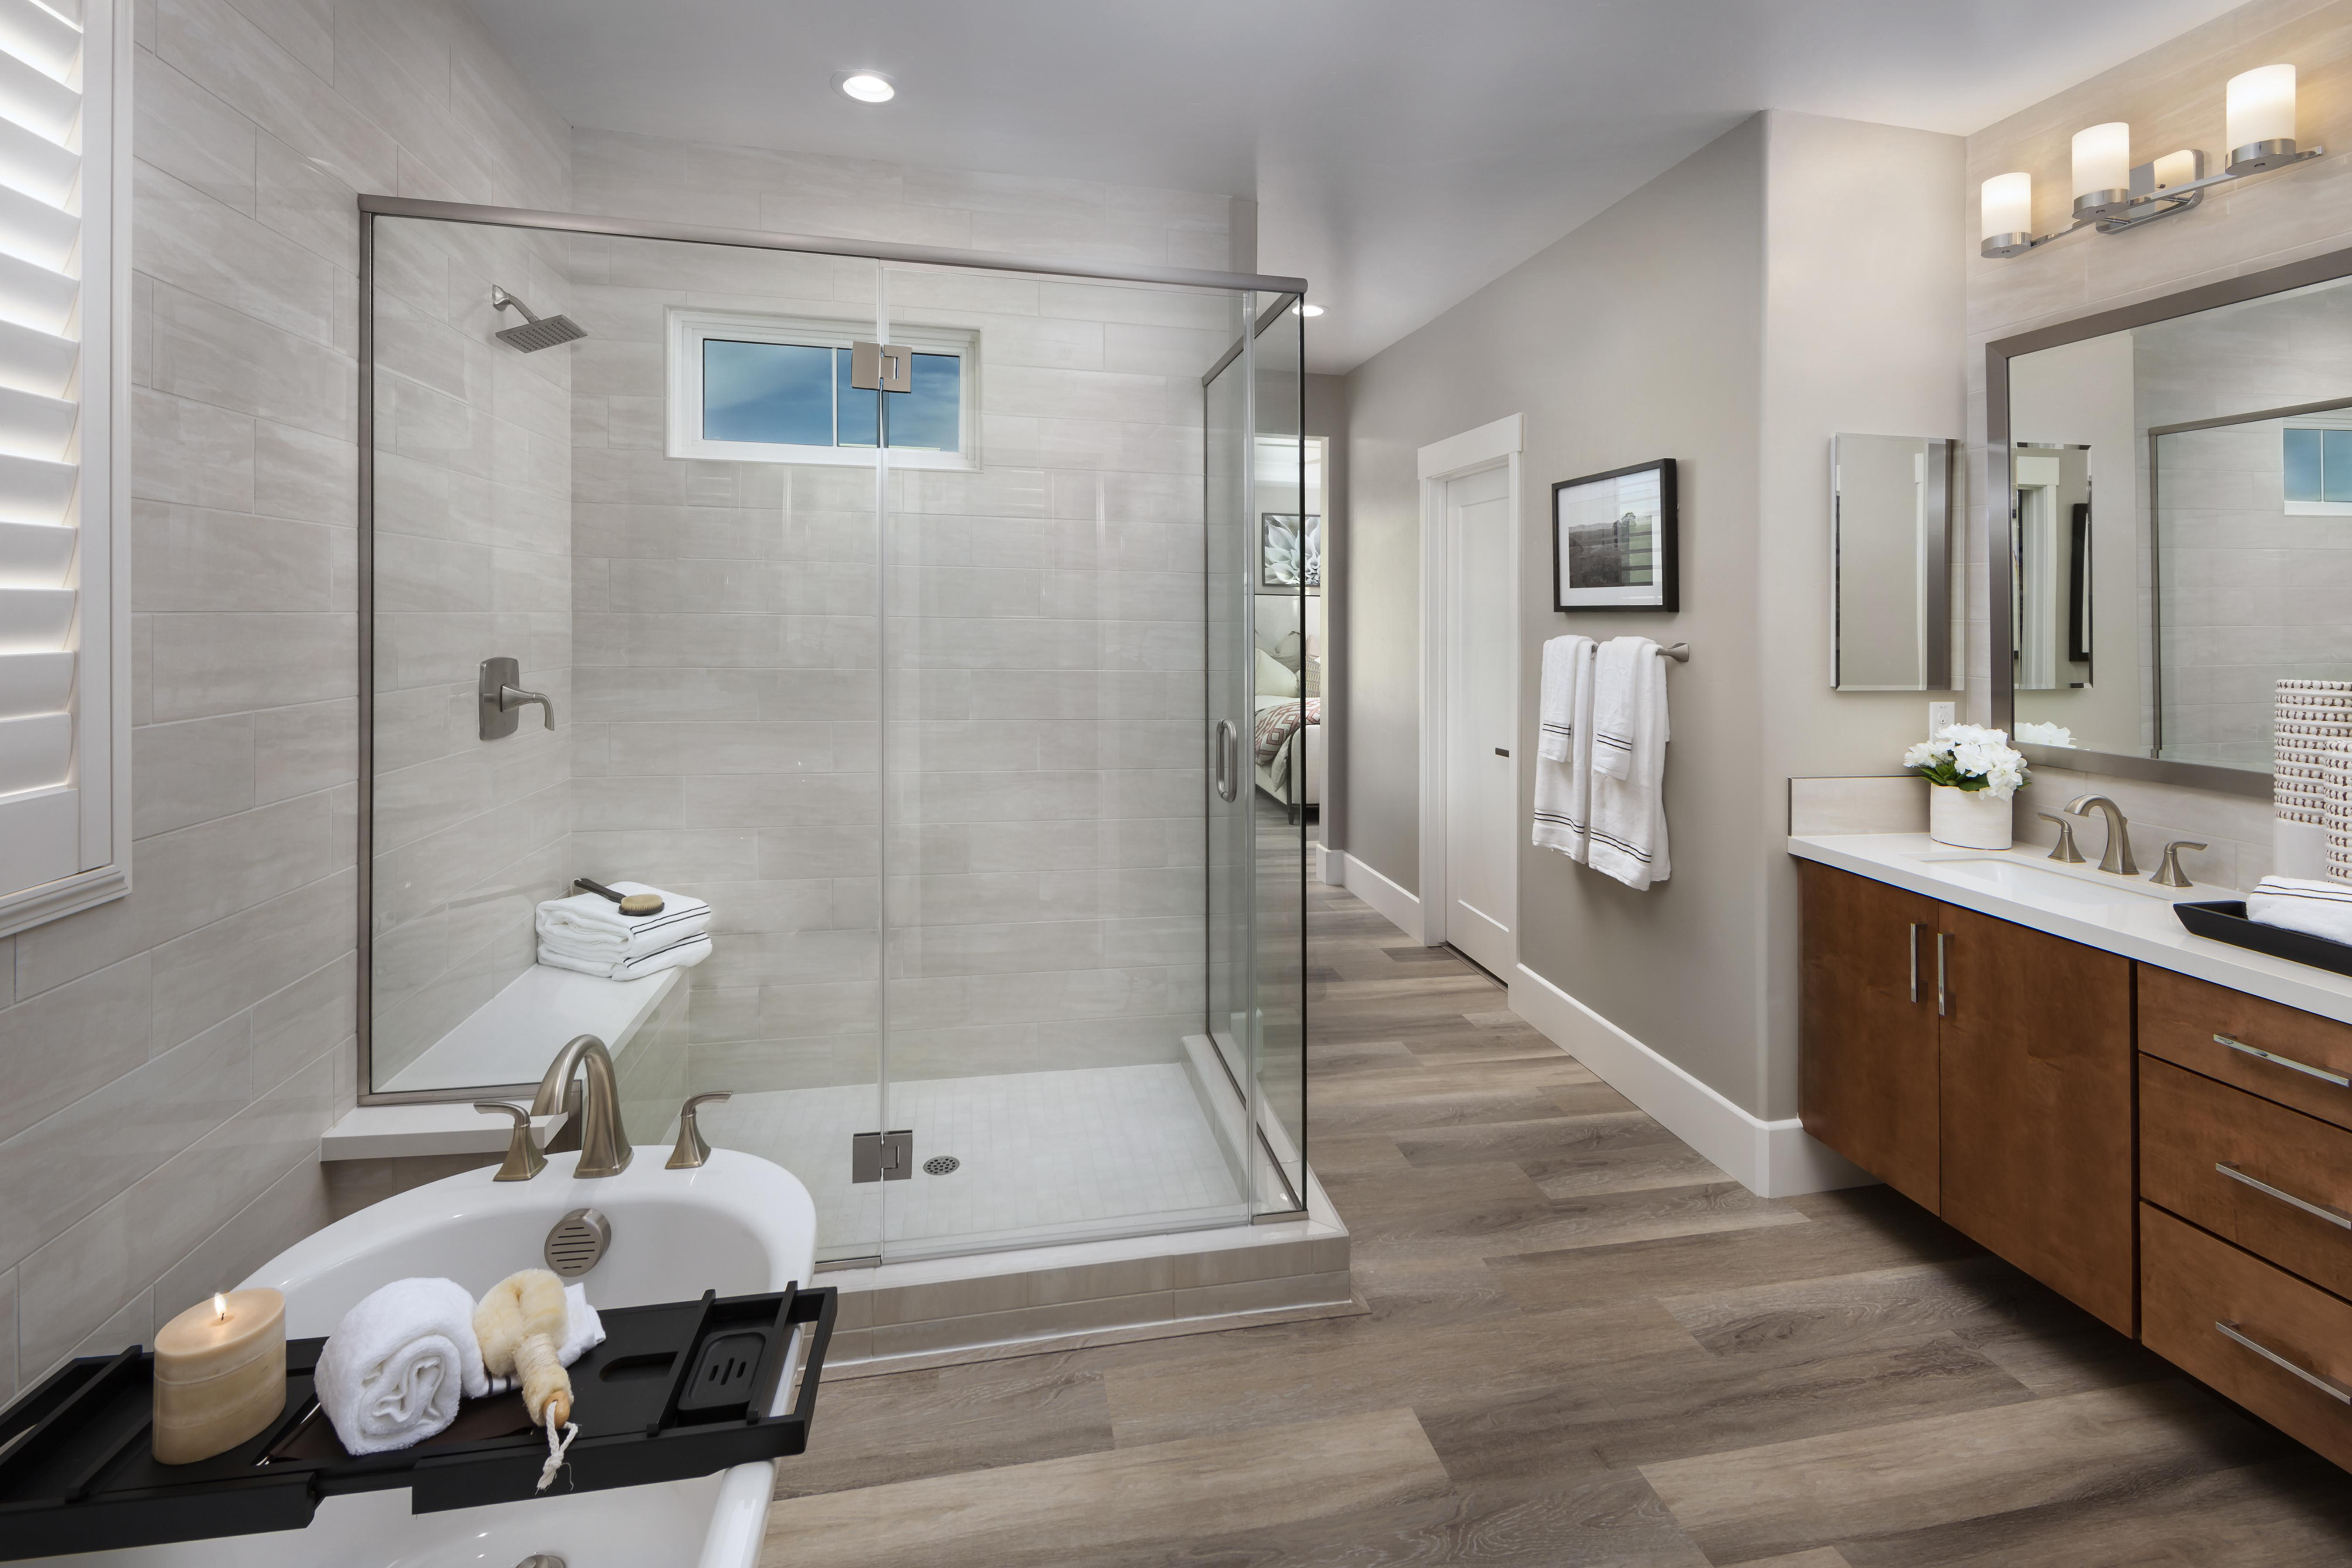 Bathroom featured in the Residence Two By Tim Lewis Communities in Sacramento, CA